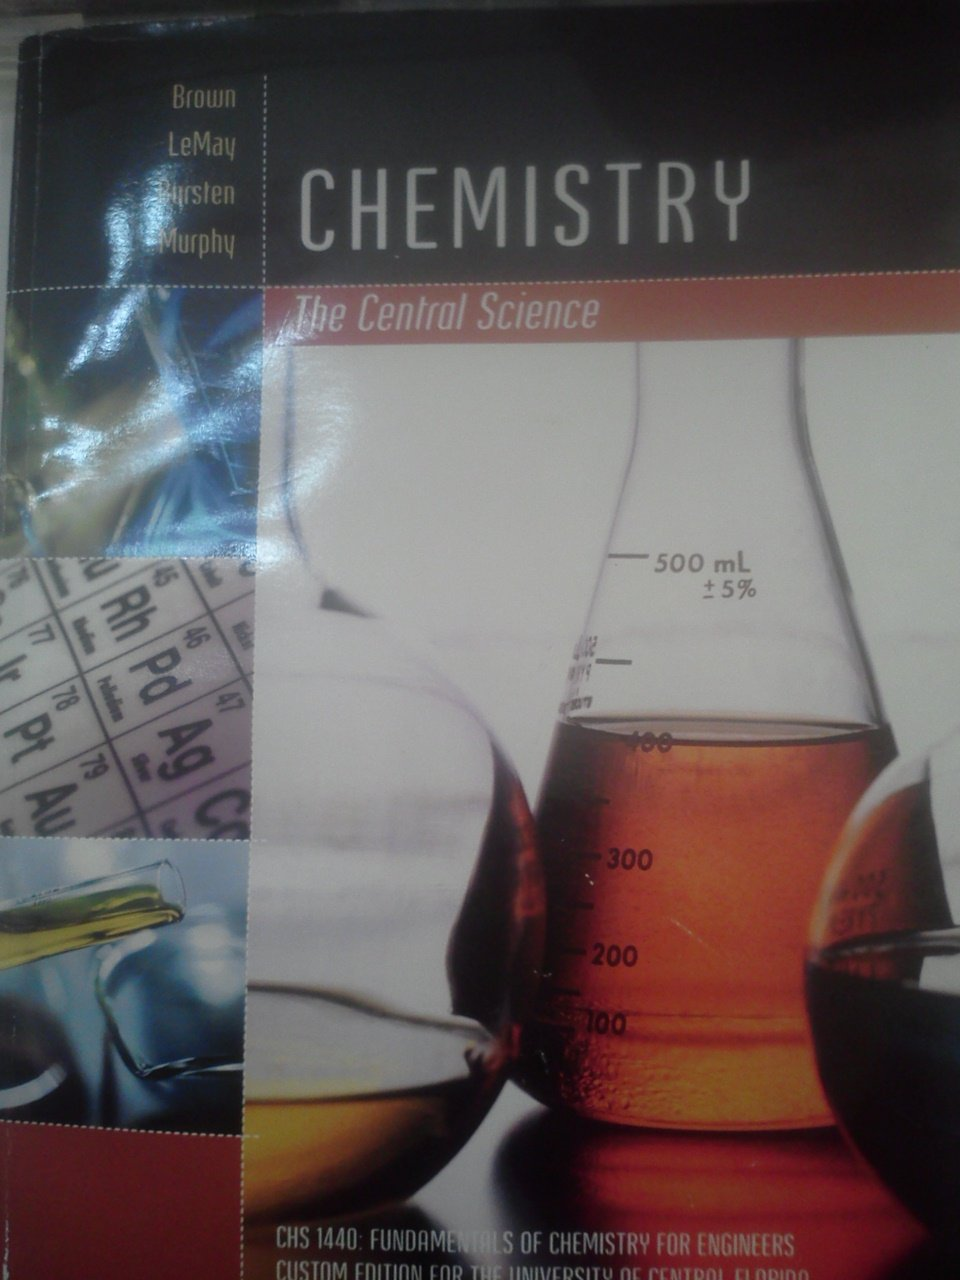 Chemistry the Central Science (CHS 1440: FUNDAMENTALS OF CHEMISTRY FOR ENGINEERS/ CUSTOM EDITION FOR THE UNIVERSITY OF CENTRAL FLORIDA) PDF